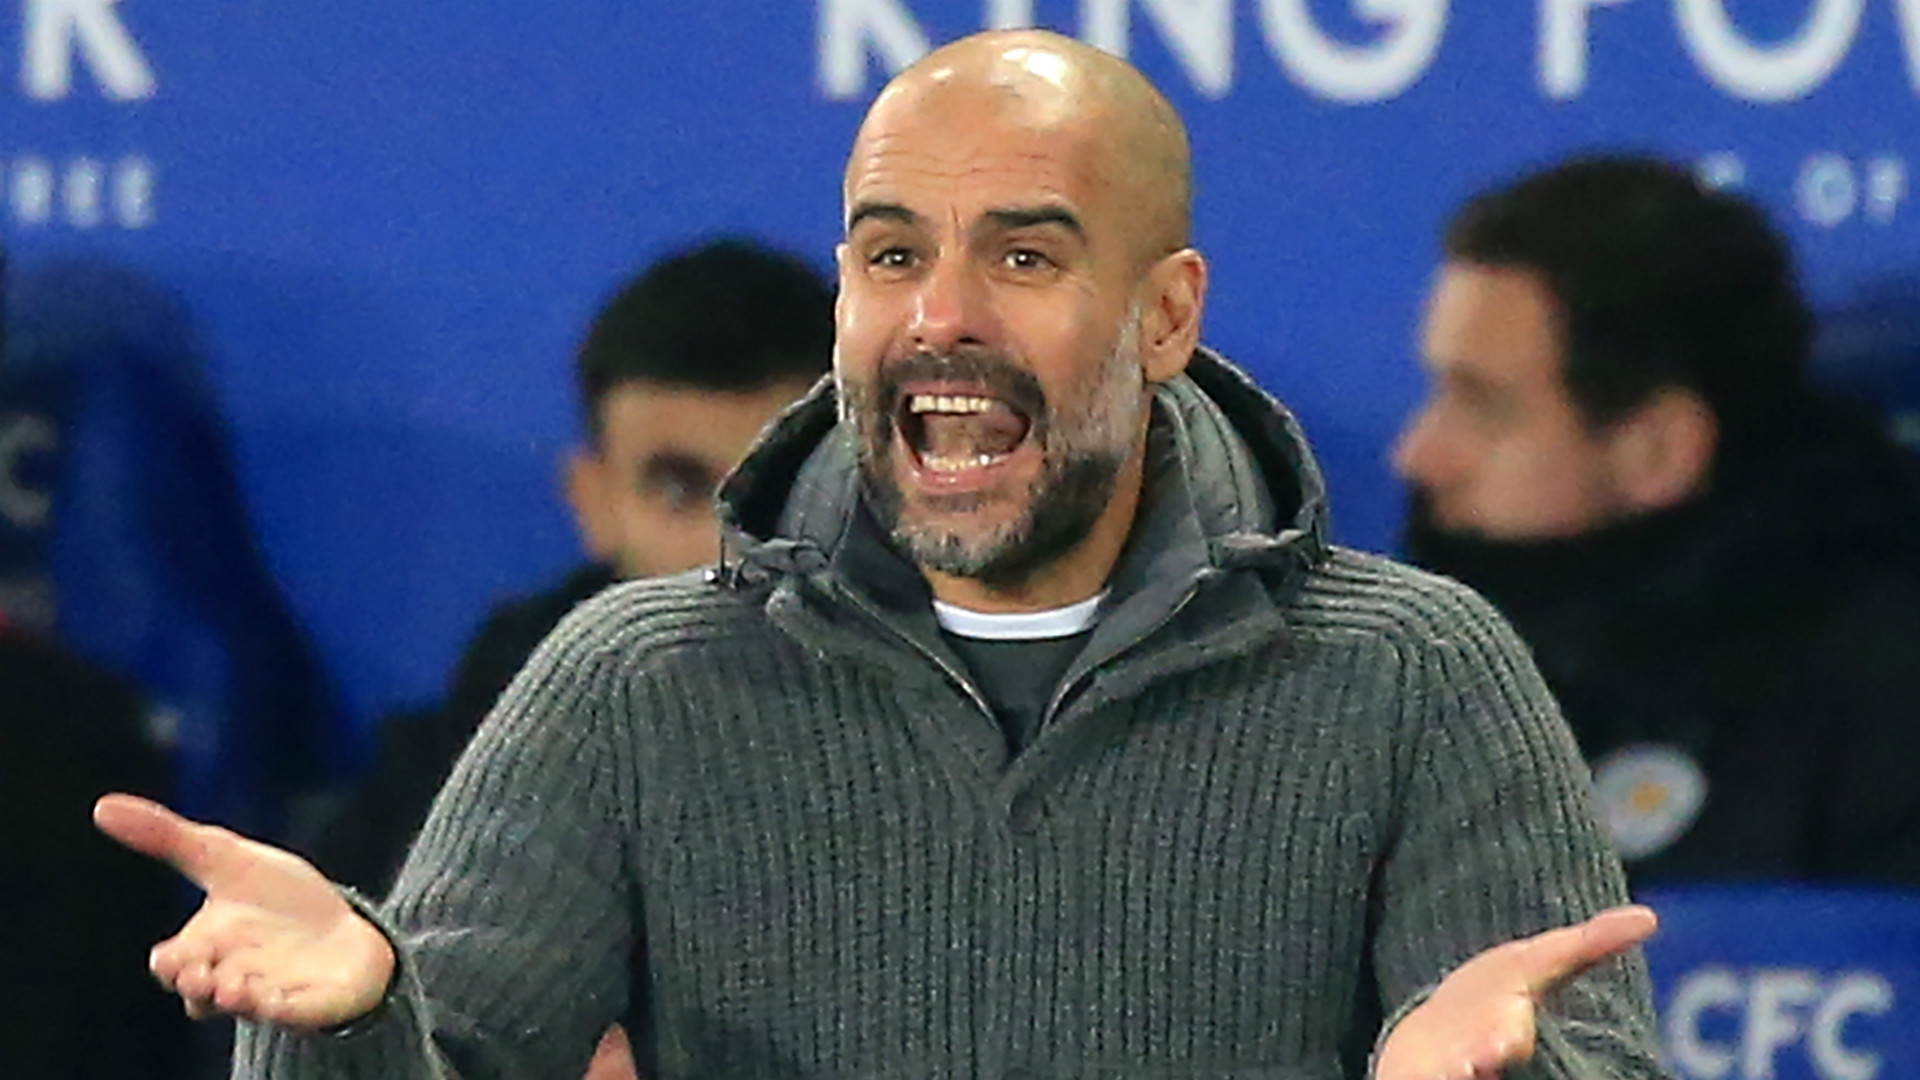 , It is too early to say Premier League title race is over, says Guardiola